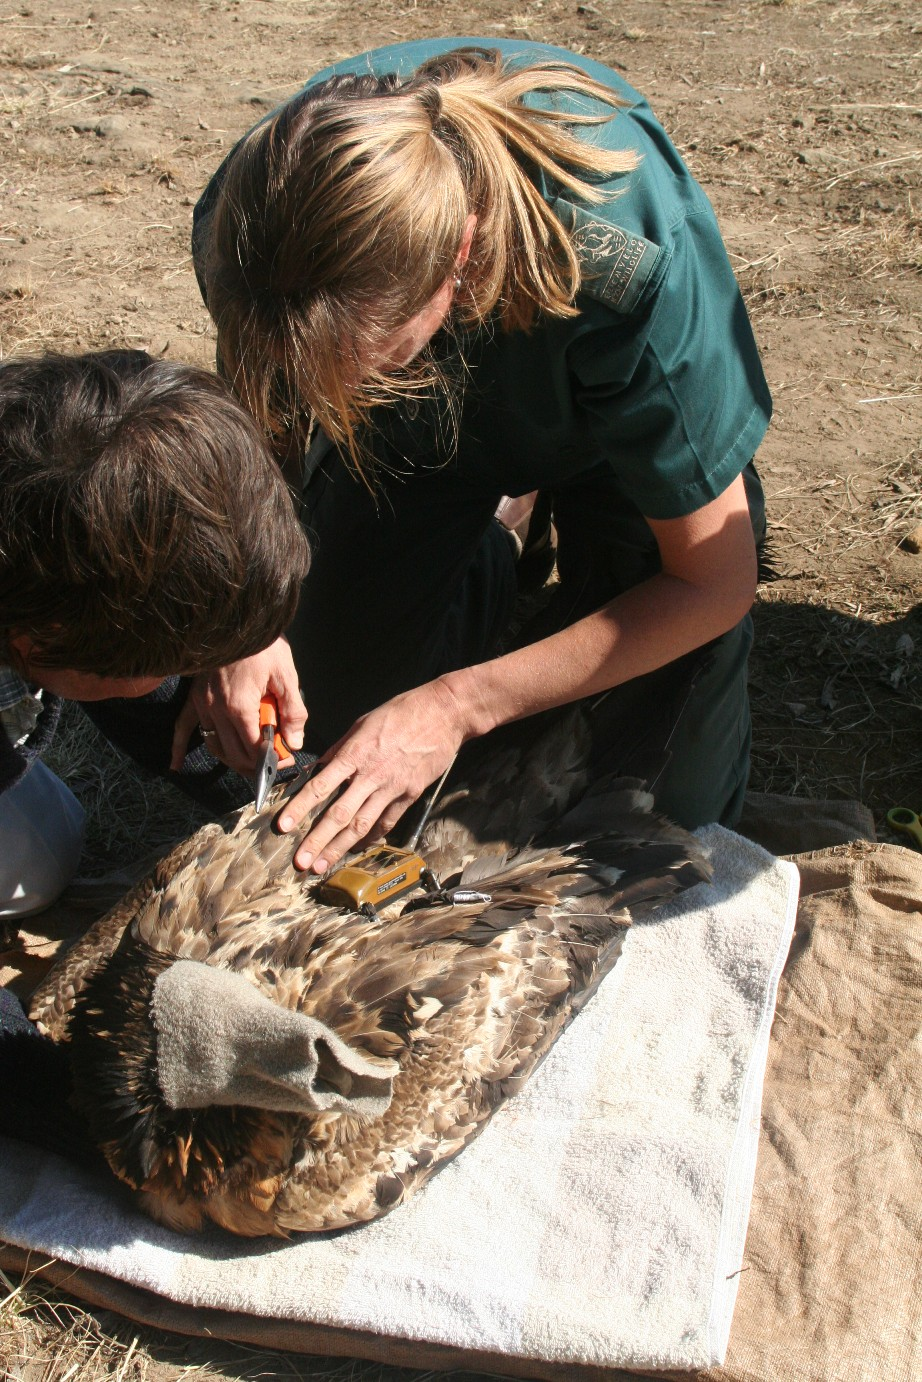 Krüger fits a backpack GPS transmitter on a vulture. Covering the bird's eyes calms it down as the miniature harness is put in place